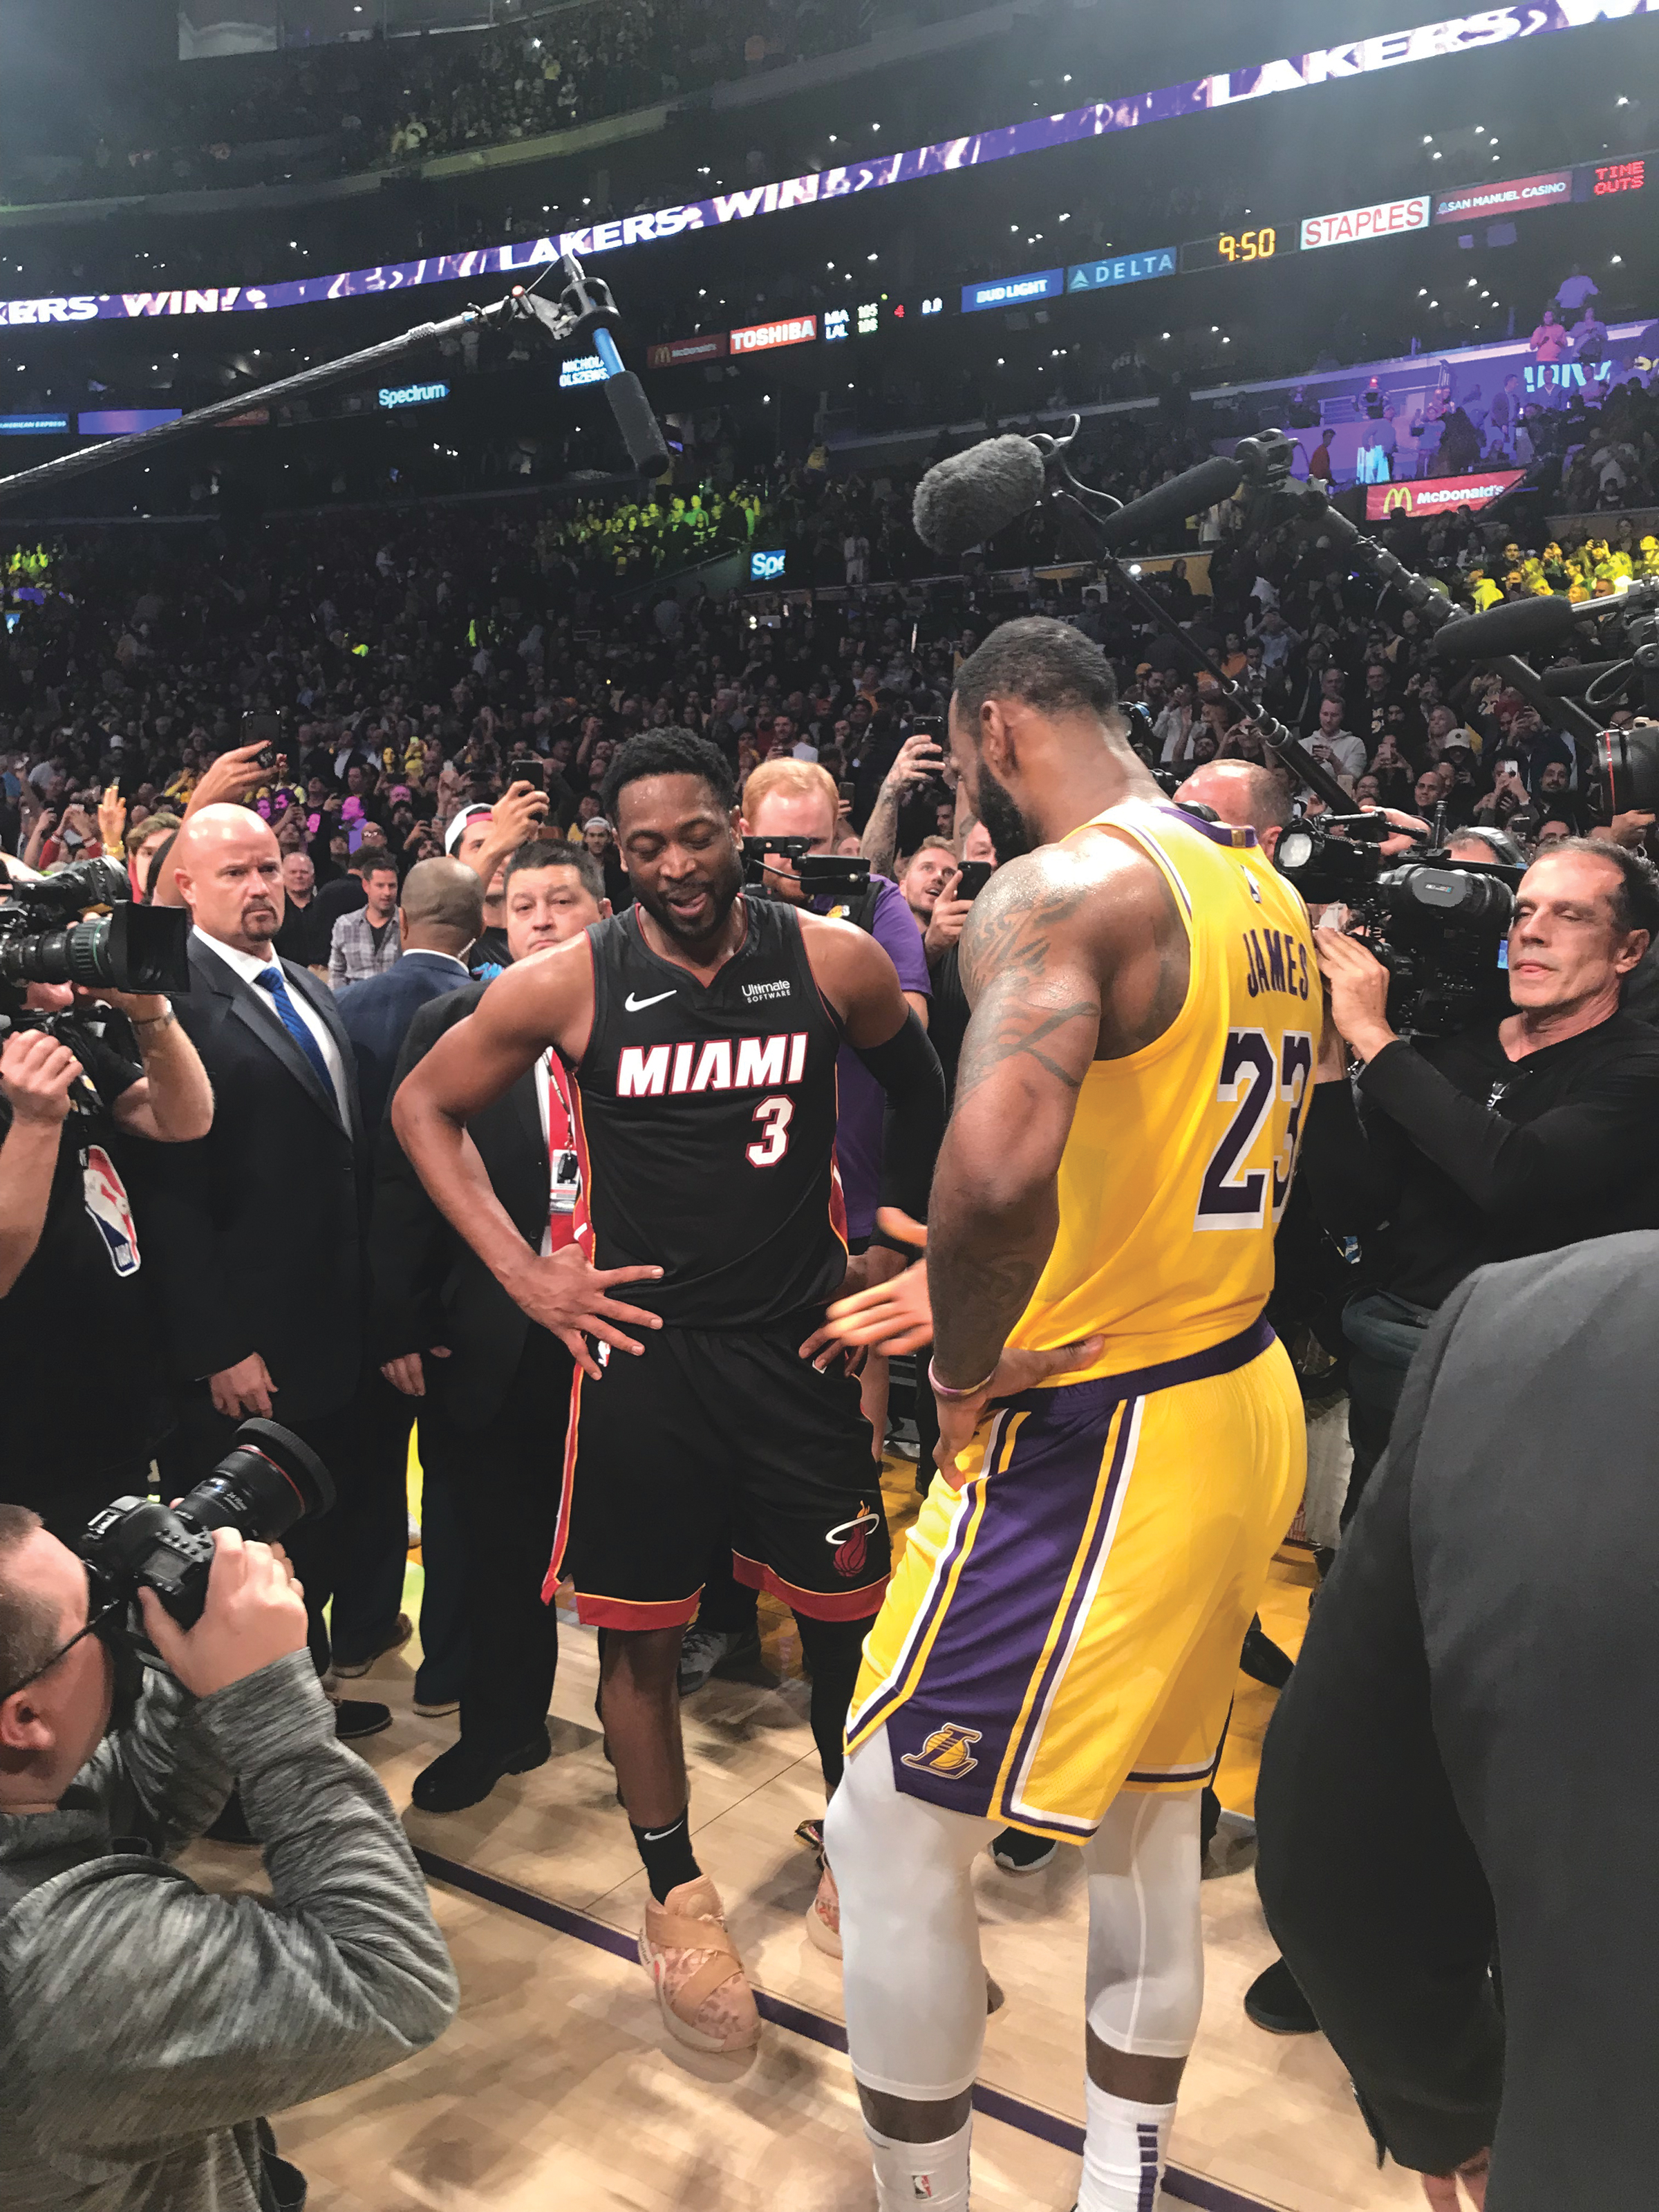 LeBron James and Dwayne Wade share a moment after Wade's last game against LeBron and the Lakers in Staples Center. (Cam Buford photo)